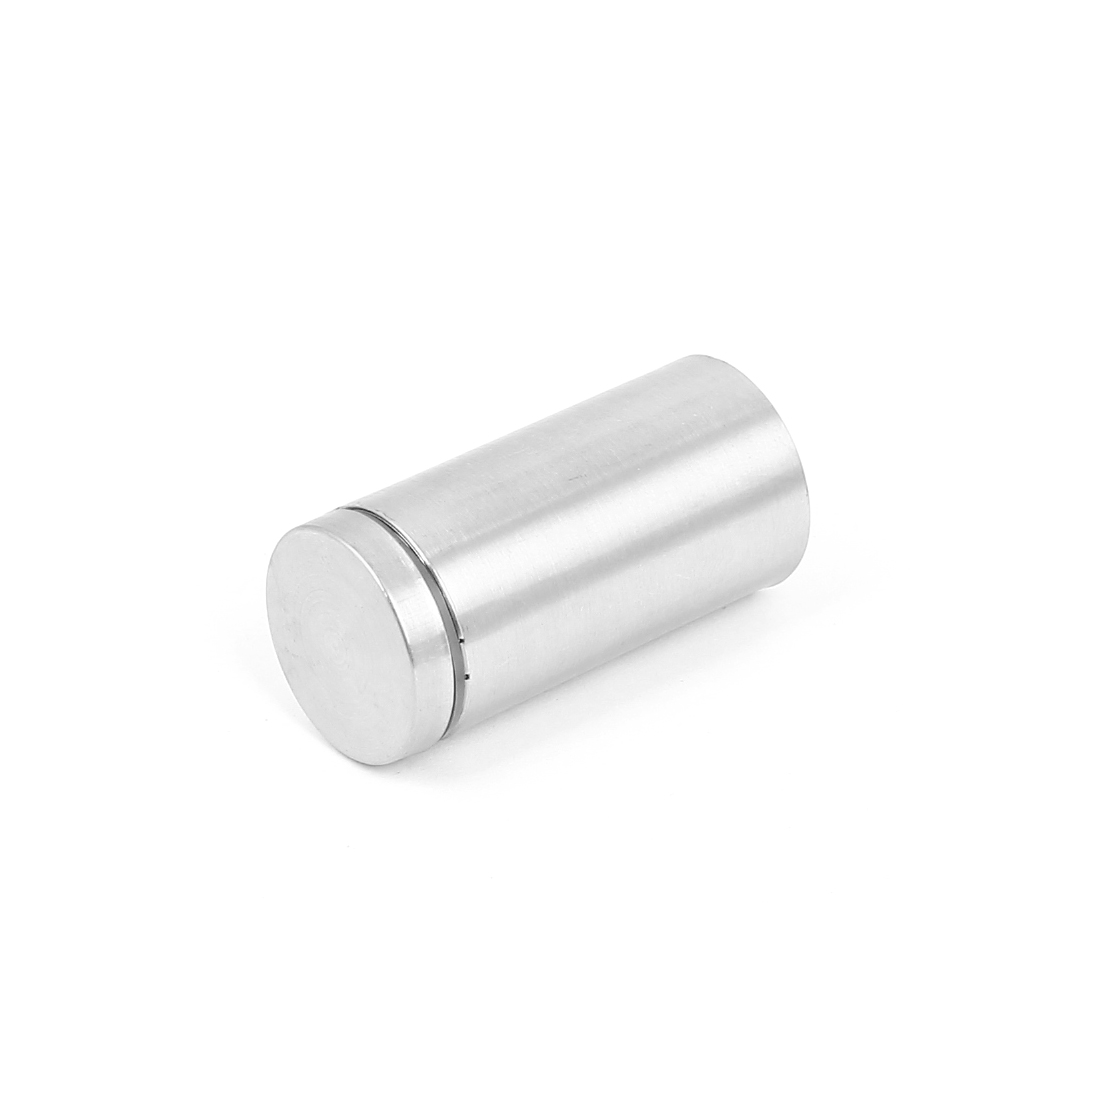 "1"" Dia 1 3/4"" Base Length Stainless Steel Standoff Hardware for Glass"